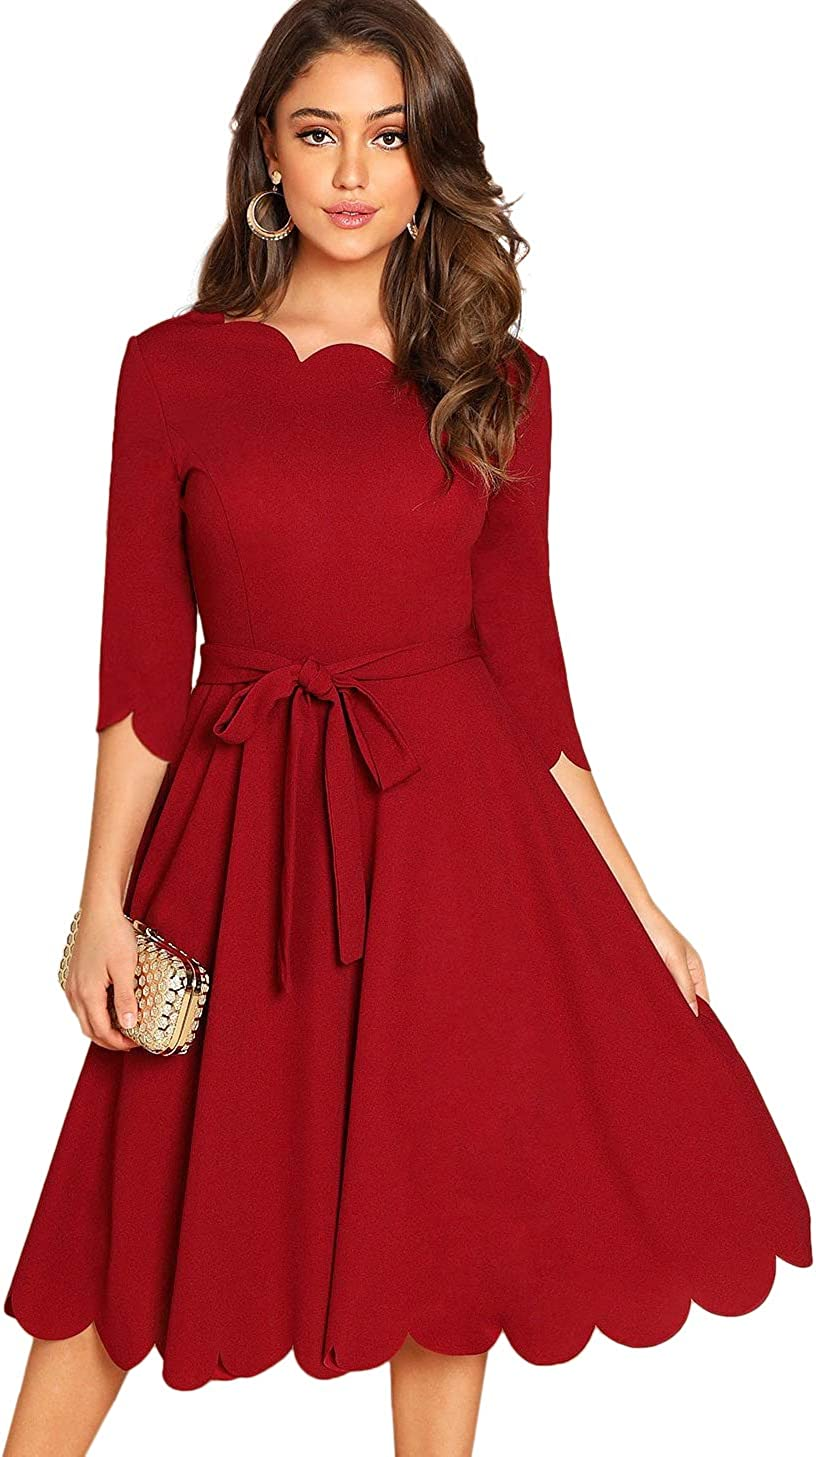 Milumia Women's Plus Size Scallop Trim Knot Belted Solid Flare Party Dress